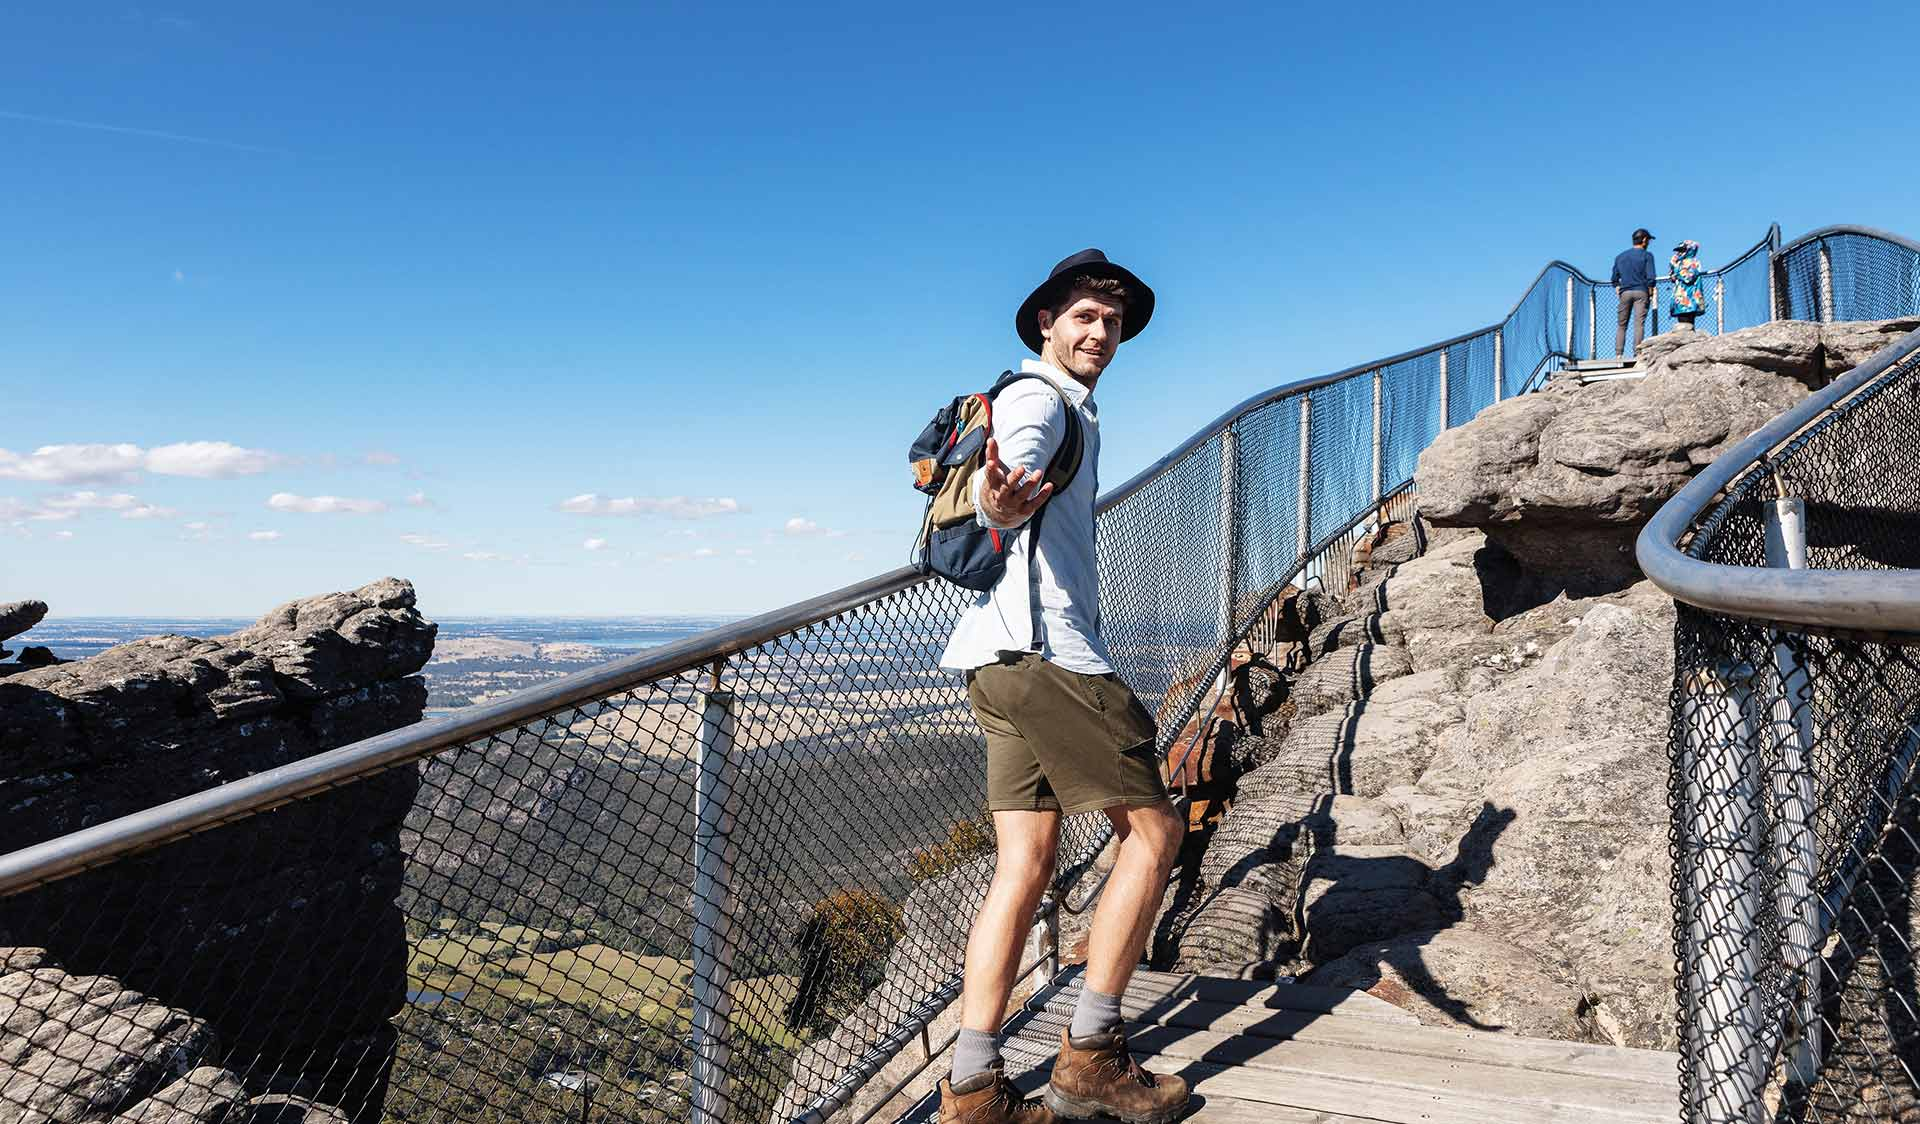 A young man offers his hand to his walking partner at the summit of The Pinnacle in the Grampians National Park.